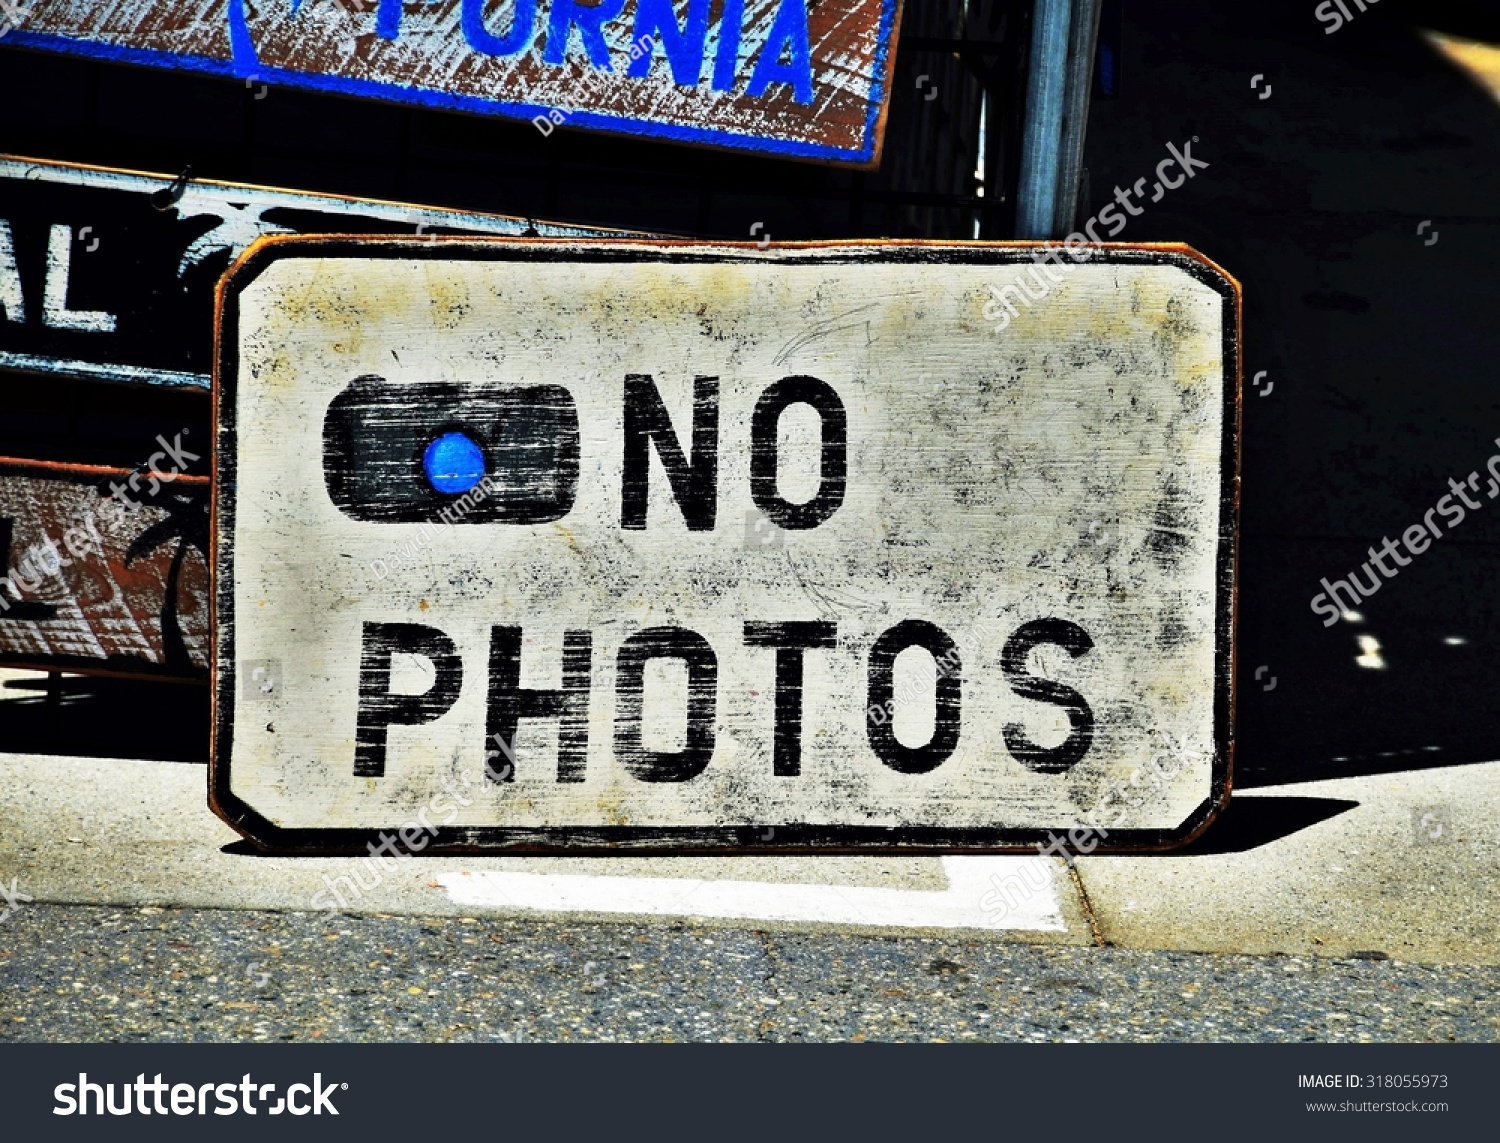 Some street vendors along the Venice Beach Boardwalk in southern California post NO PHOTOS signs, prohibiting photography of their wares.